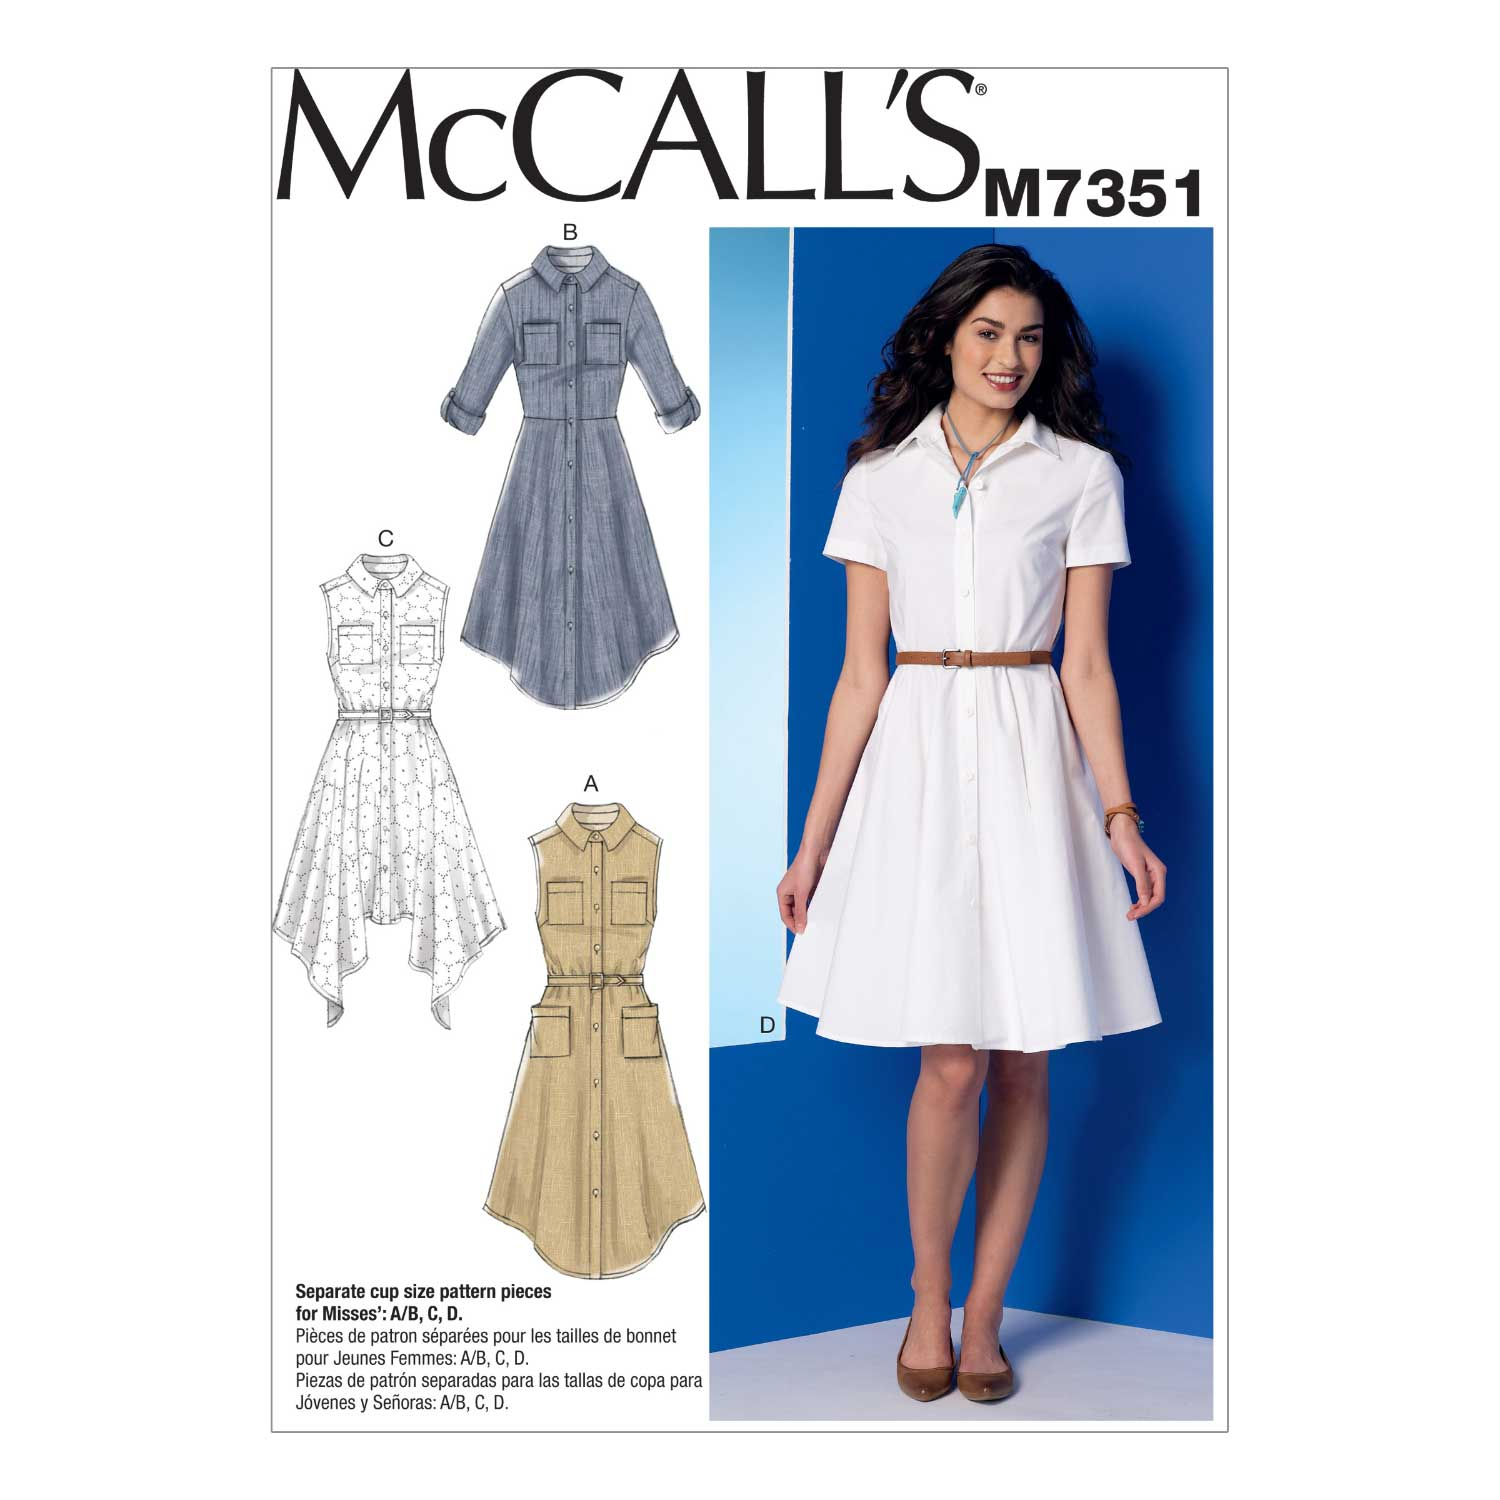 Holm Sown: McCalls M7351 Shirtdress Sewing Pattern